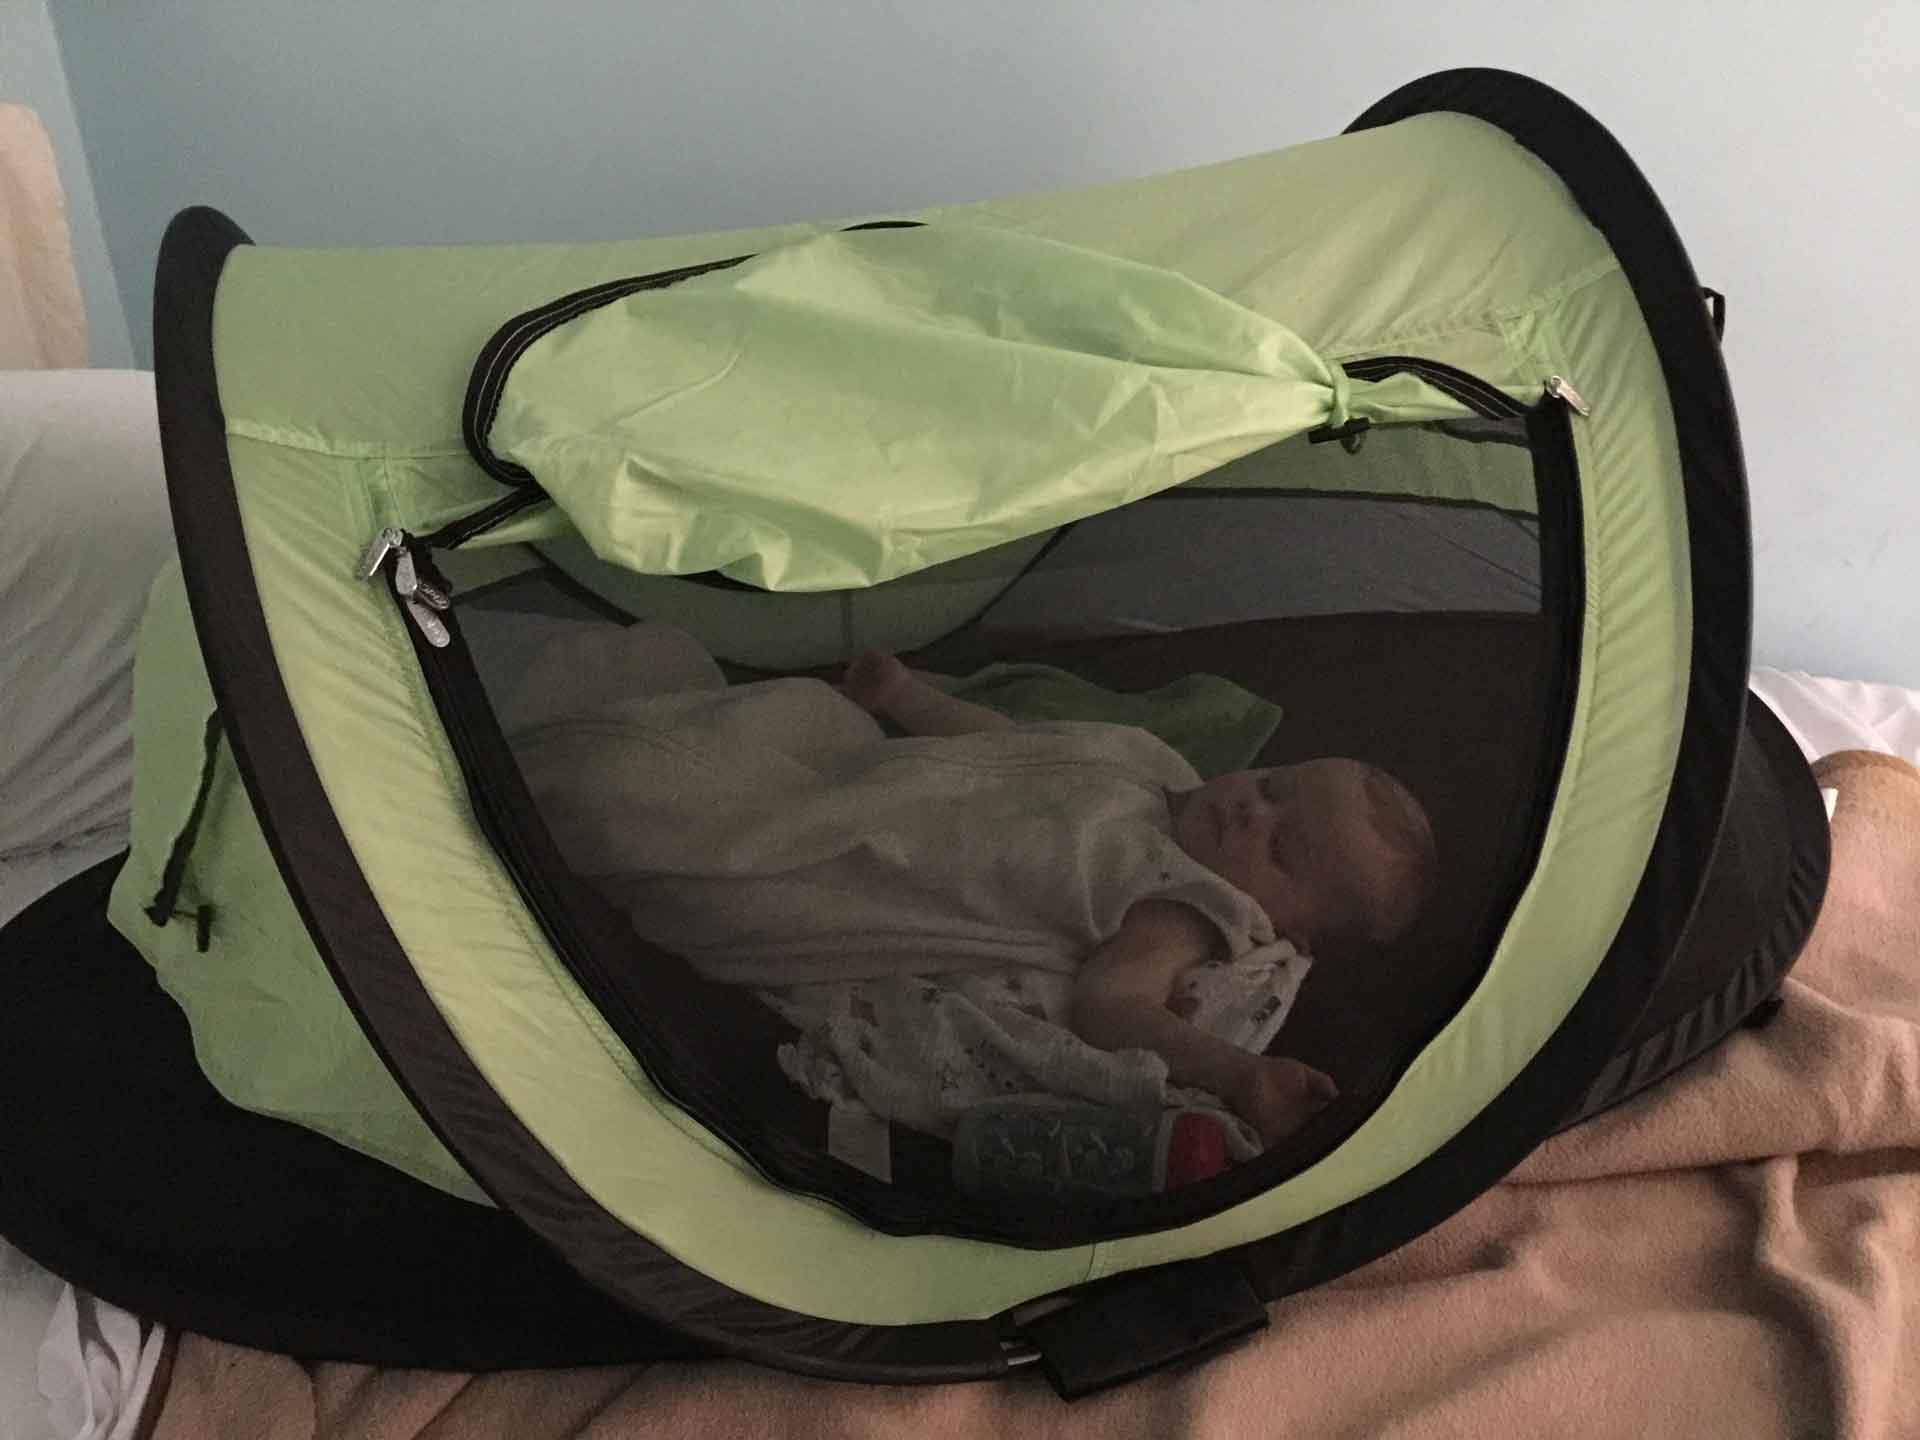 Toddler Sleeping in KidCo PeaPod Plus Travel Tent